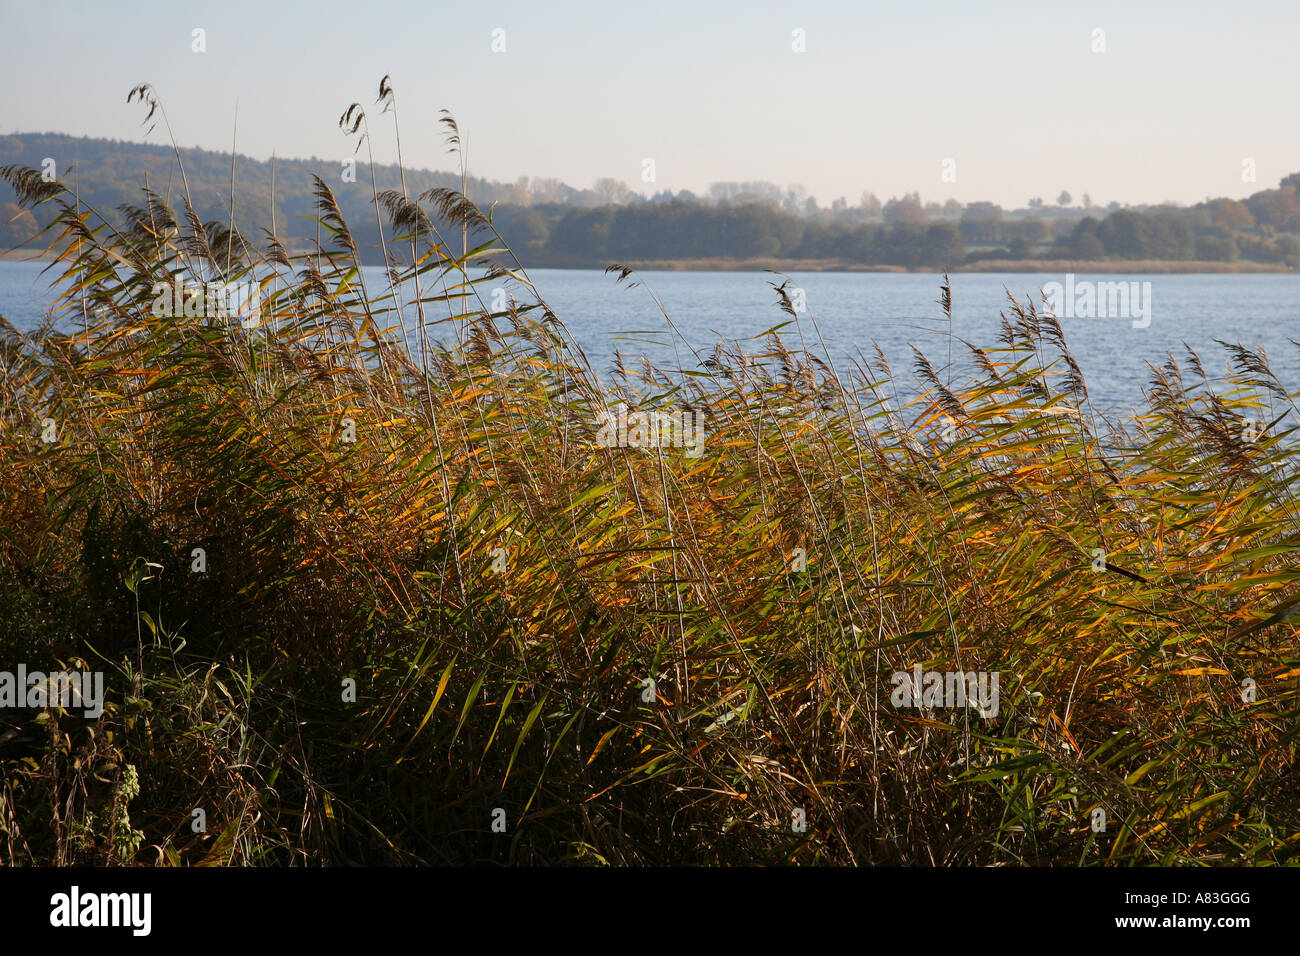 The Segeberger lake in Schleswig-Holstein, Germany - Stock Image